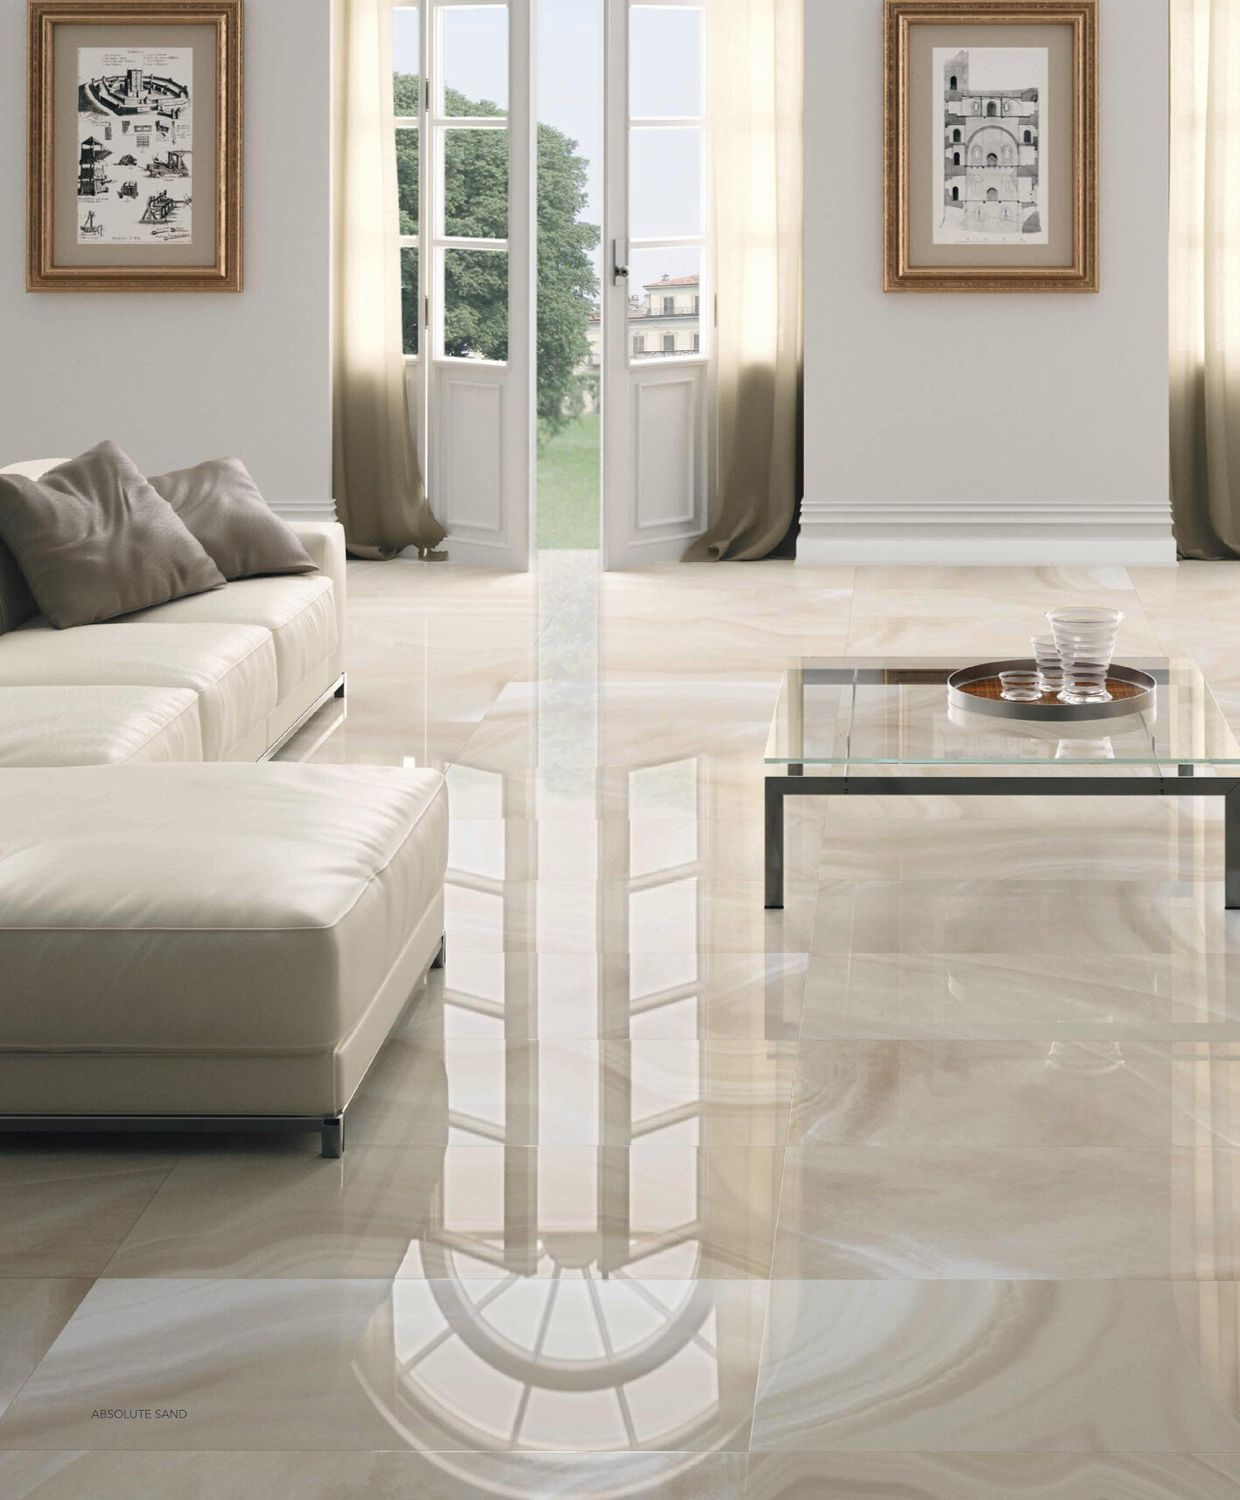 High Gloss Ceramic Floor Tile In 2020 Living Room Tiles Tile Floor Living Room Indoor Tile